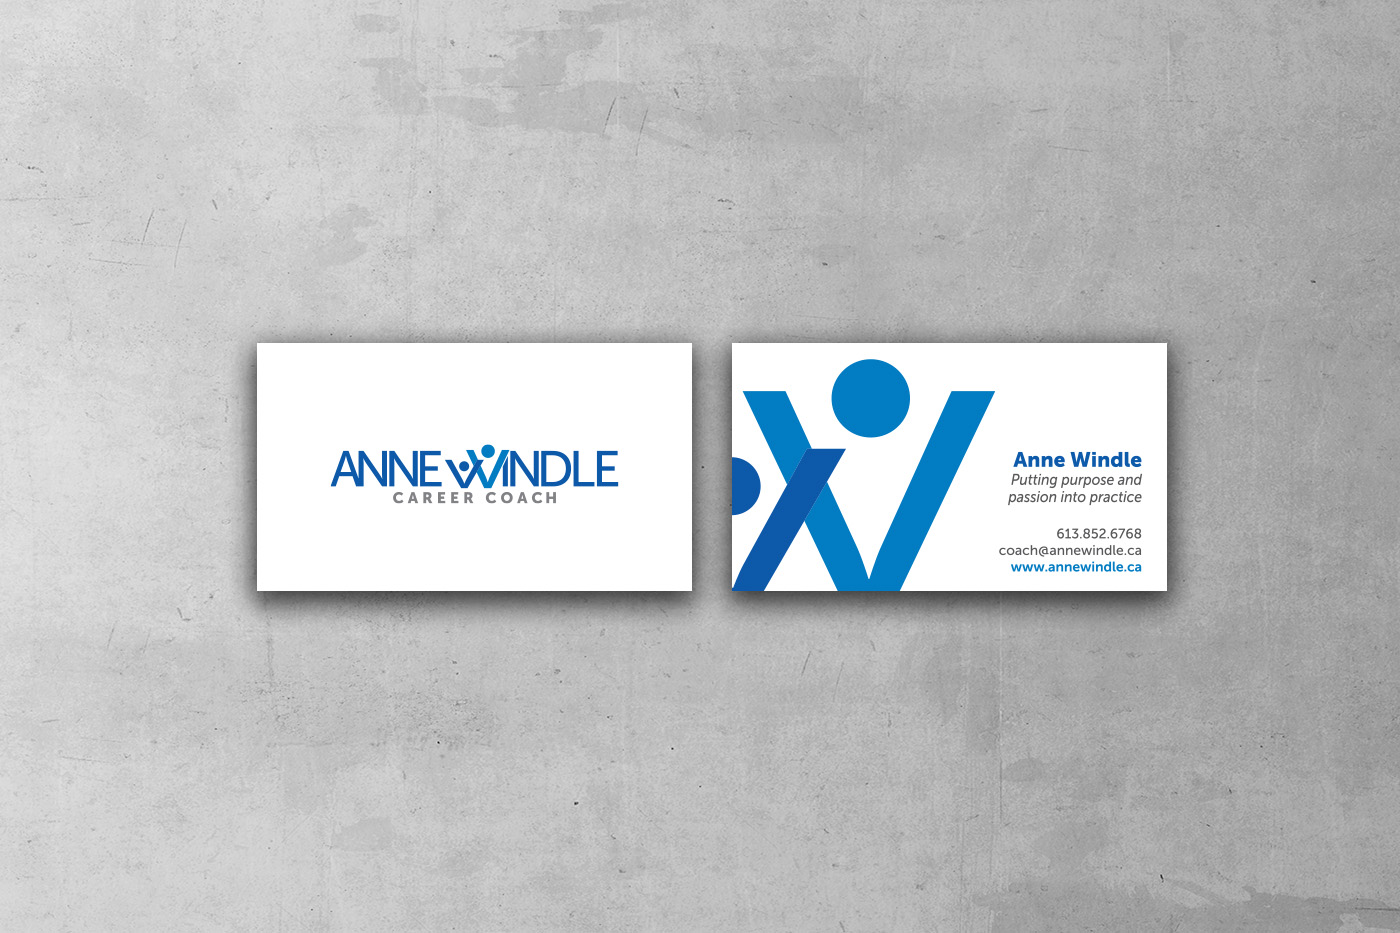 Anne-Windle-Career-Coach-business-card-design-3.jpg